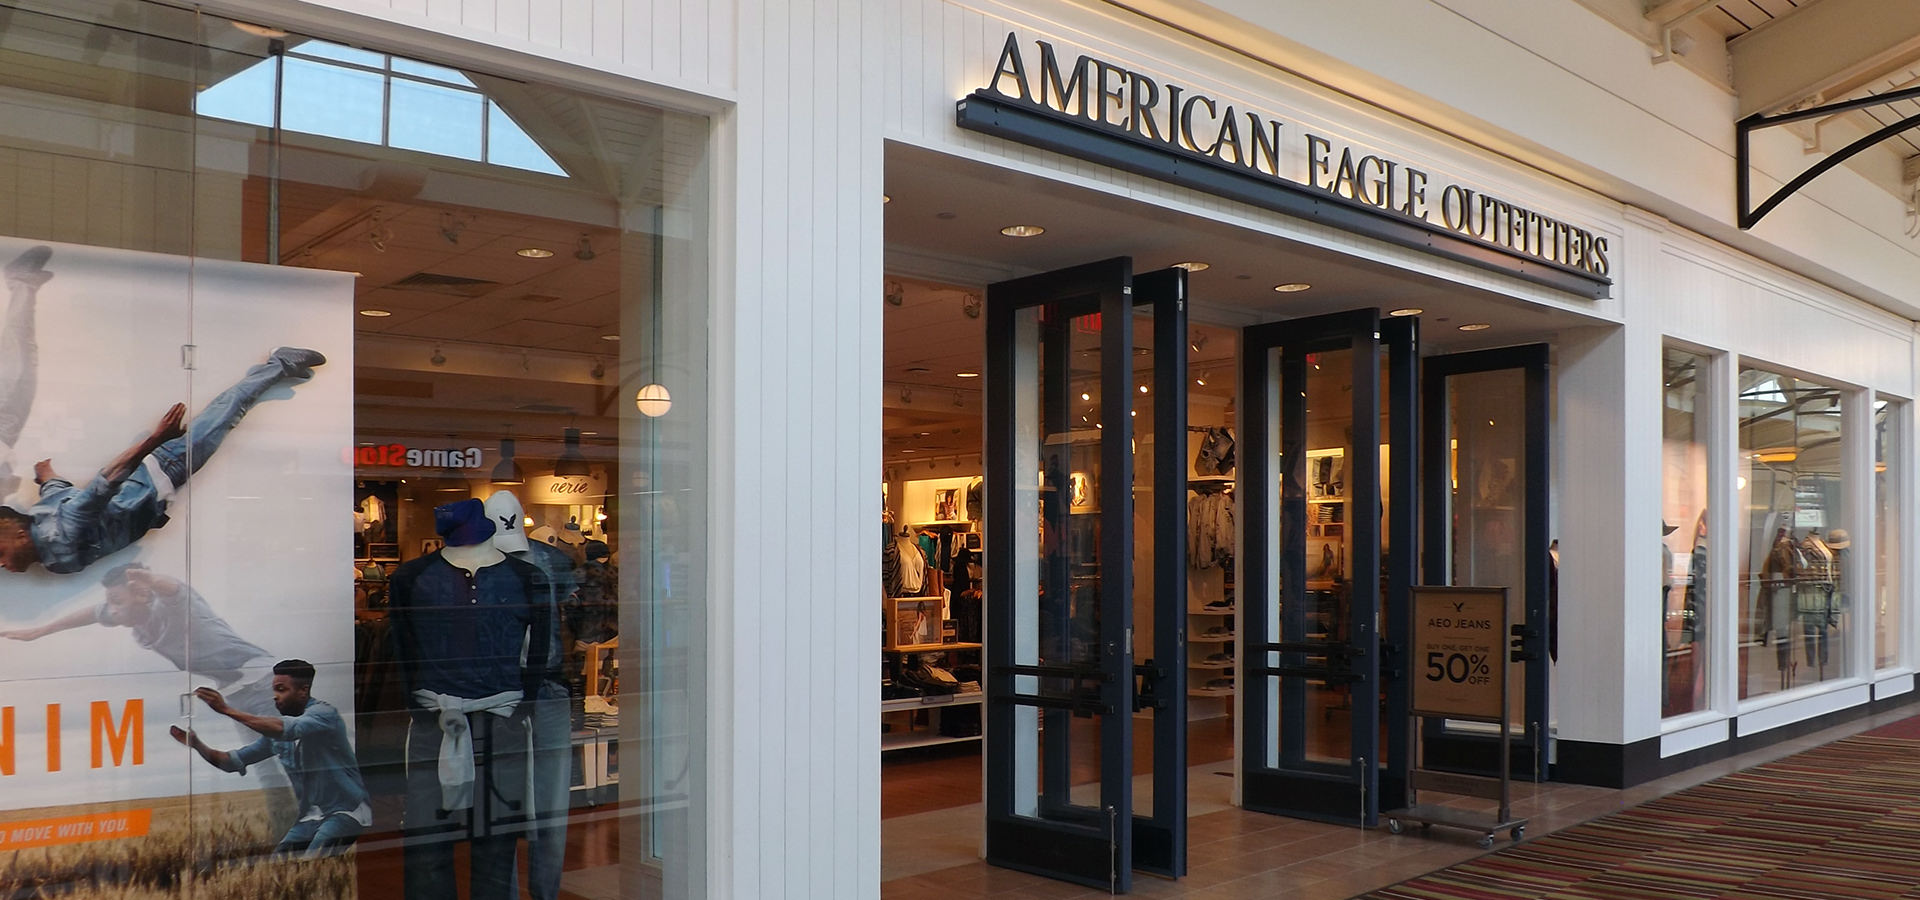 d730c549b15 American Eagle Outfitters Near Me in Dulles, VA | Dulles Town Center